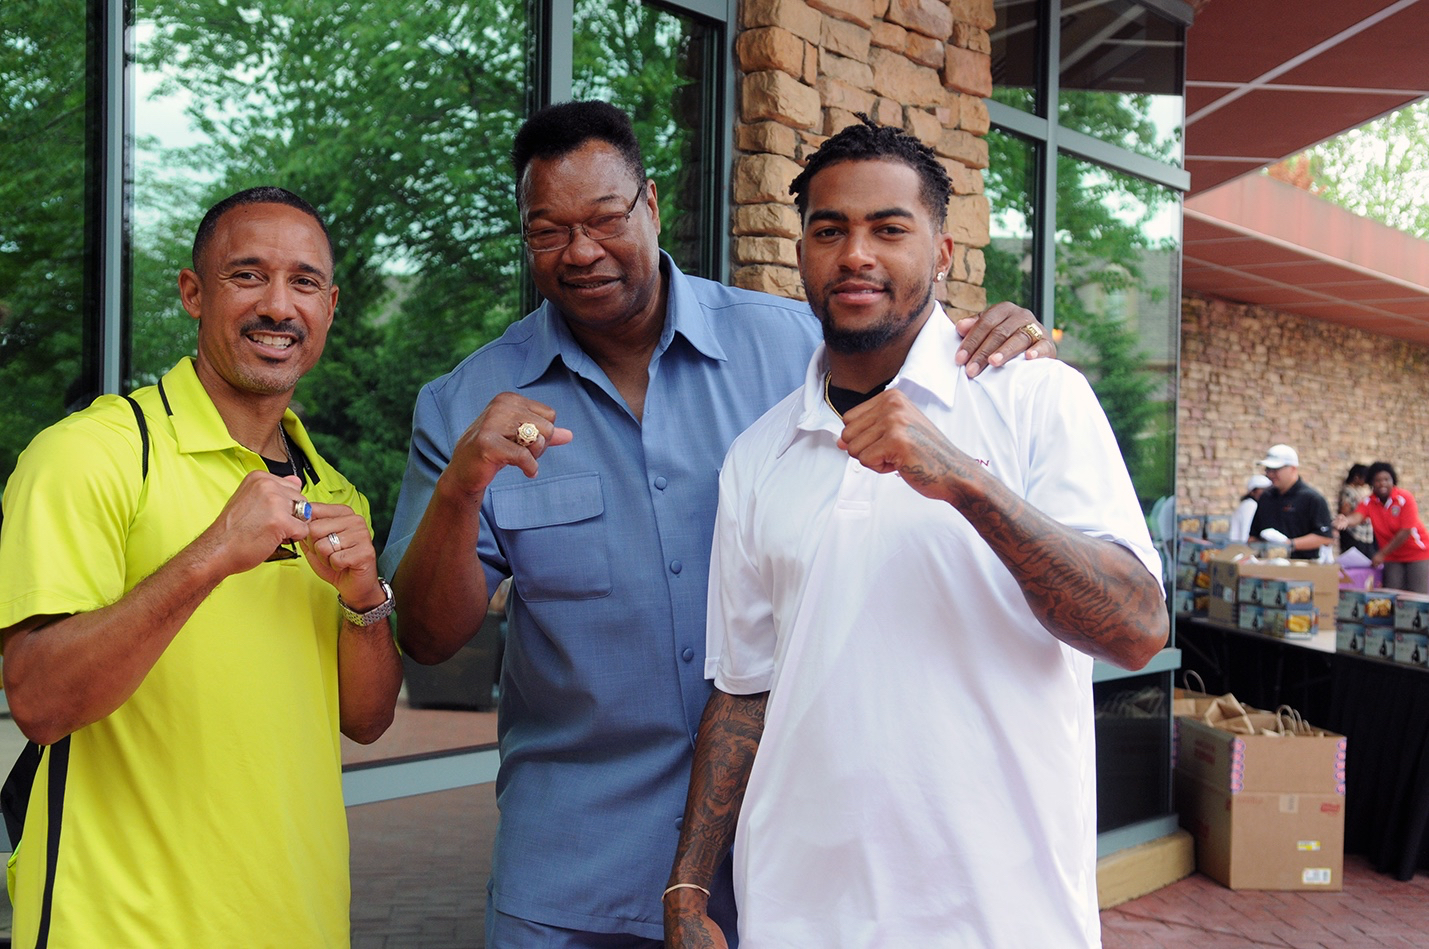 DeSean Jackson Foundation 2015 Golf Tournament